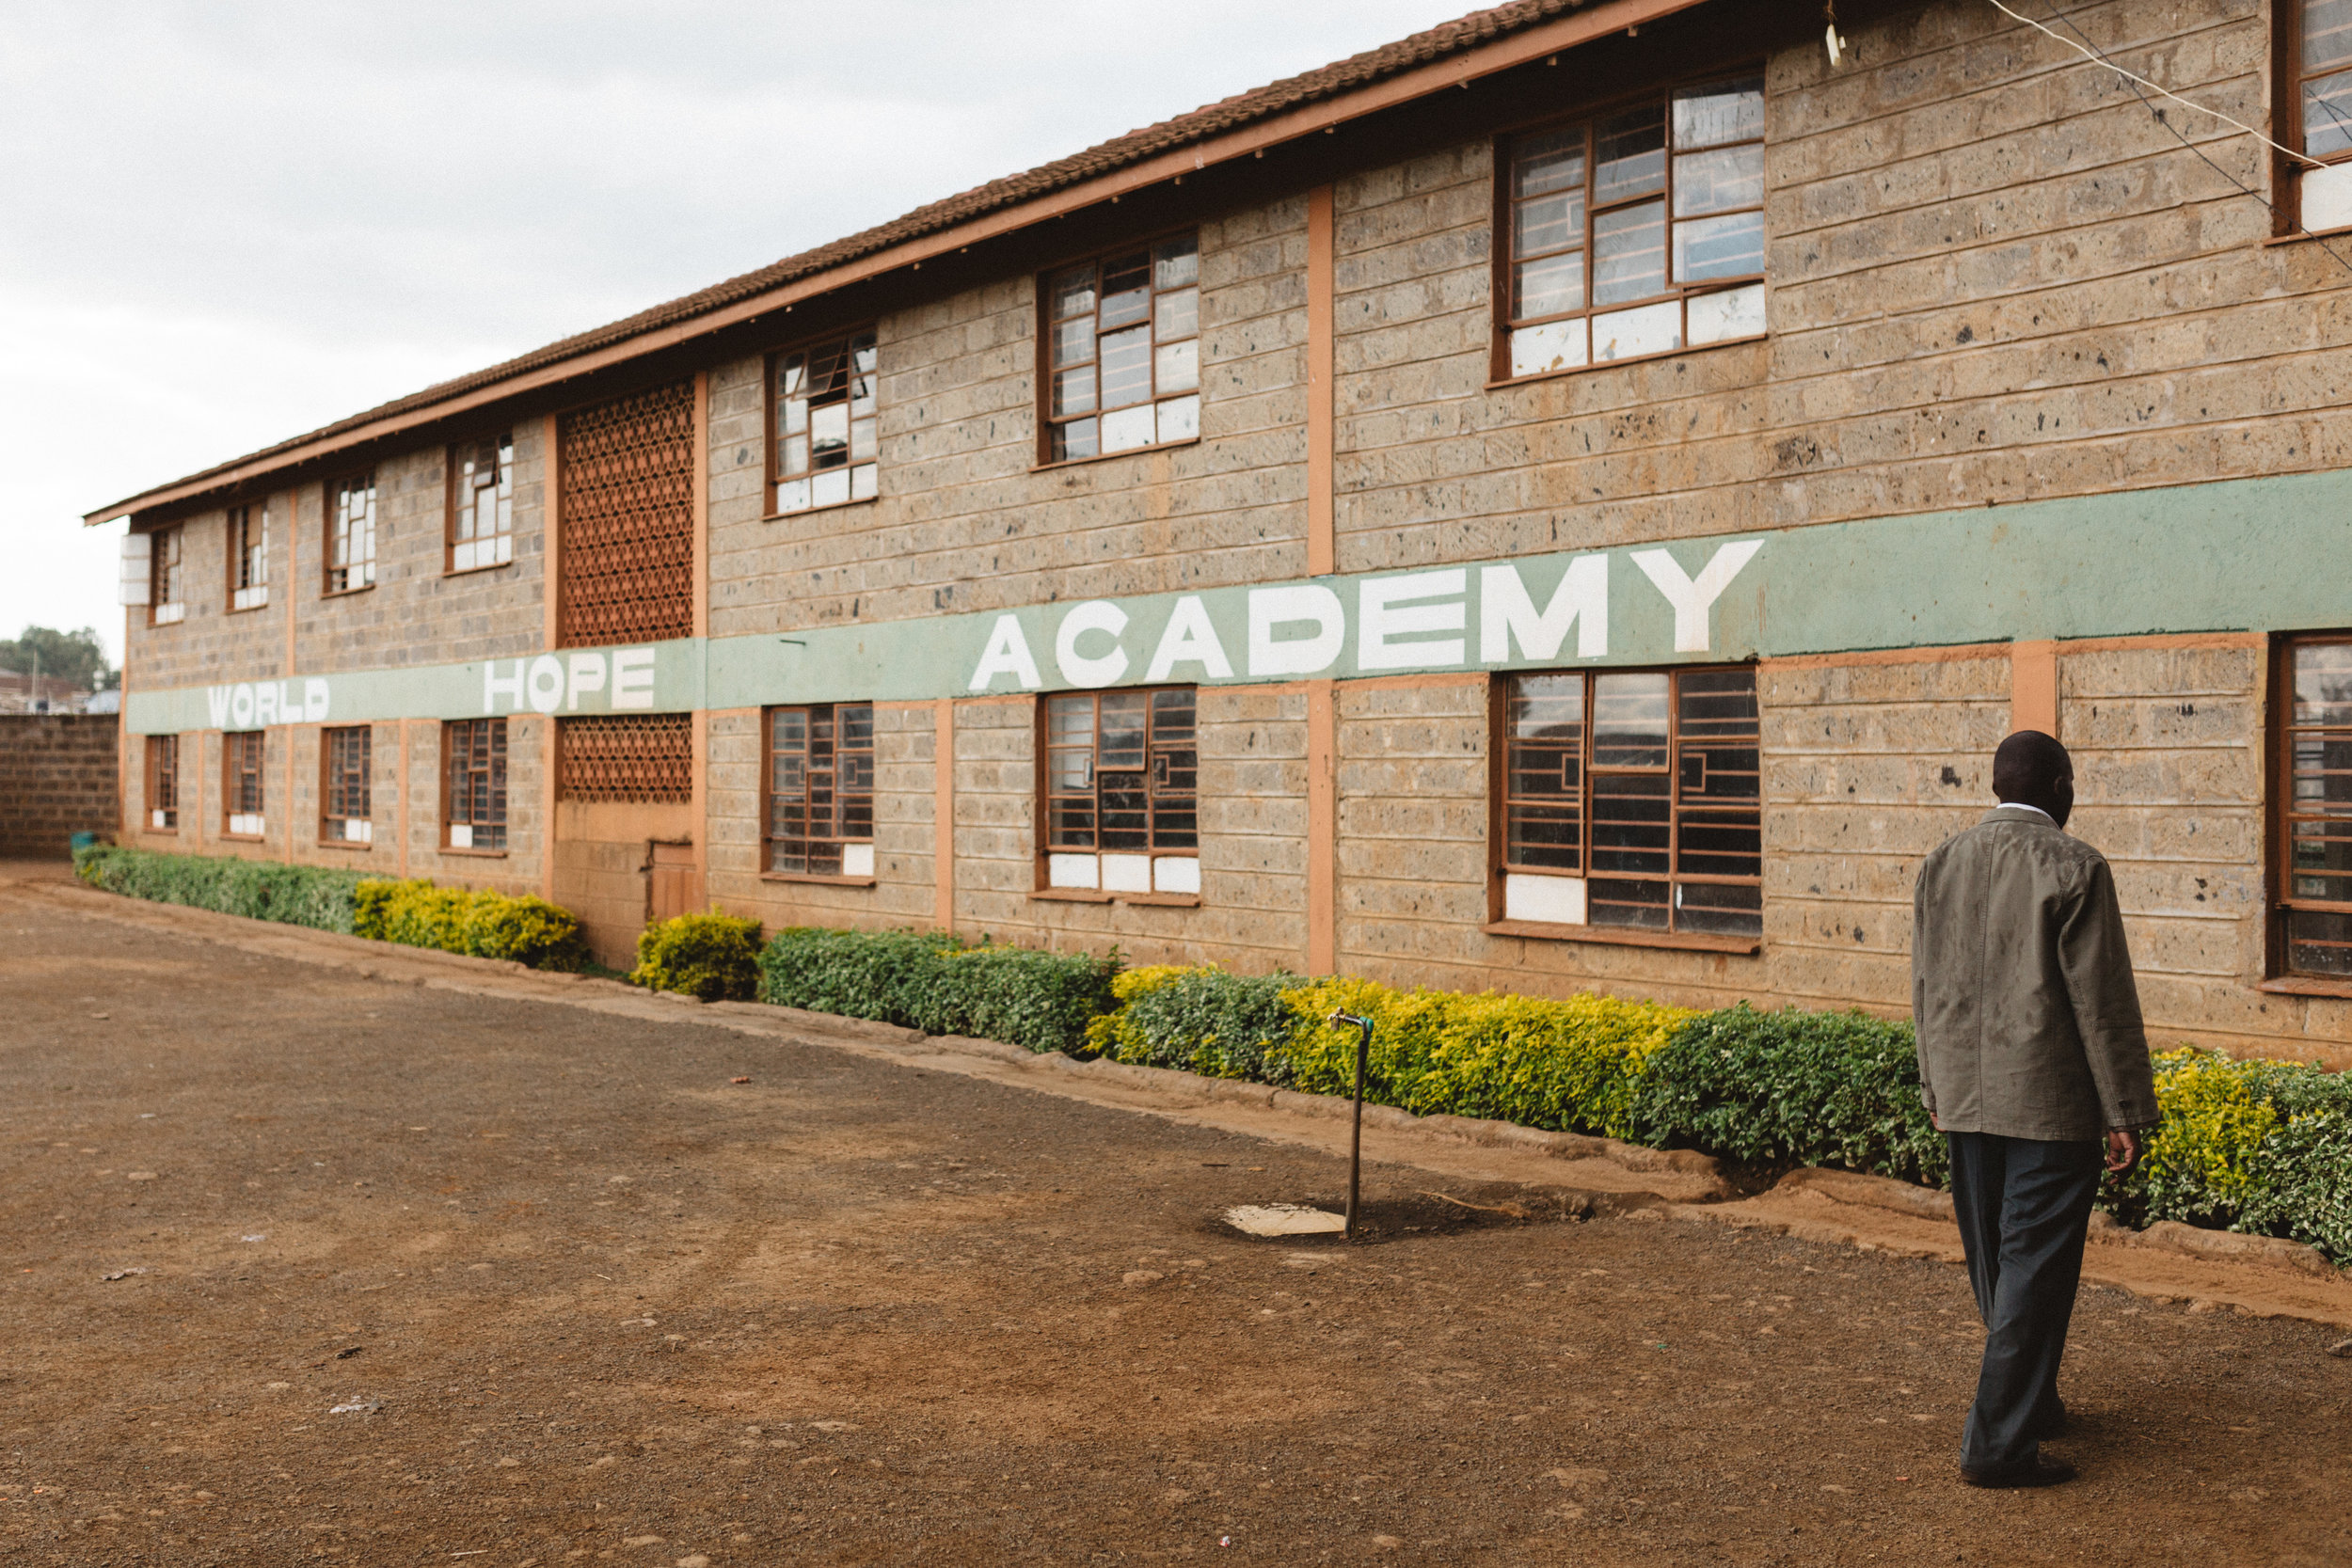 World Hope Academy, Nairobi. This was the first of many home centers that we visited during our time in Kenya. One Child Matters uses the local church to provide holistic development opportunities for children.